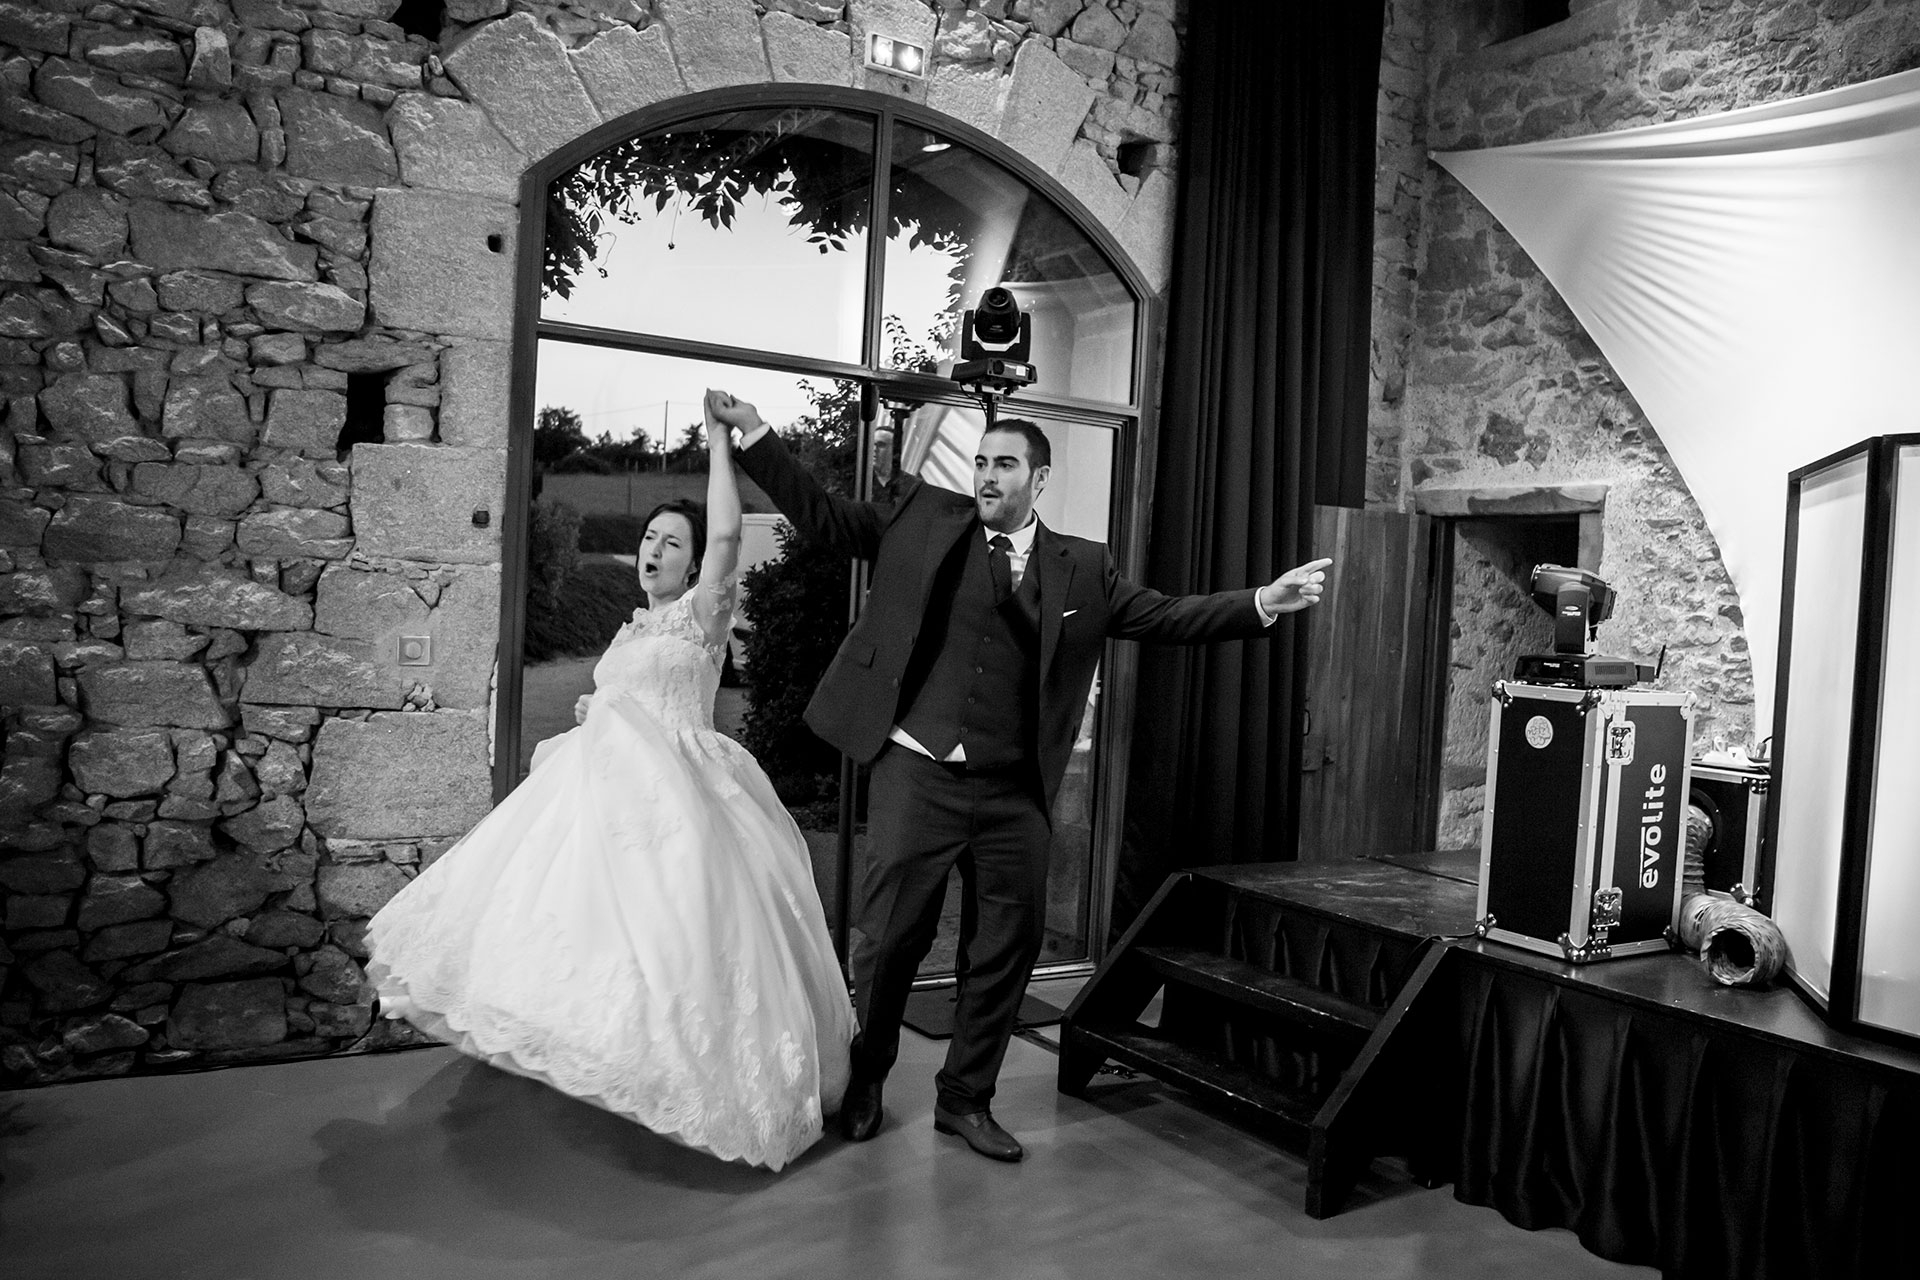 particuliers-evenements-mariage-oui-tiphaine&rudy-63